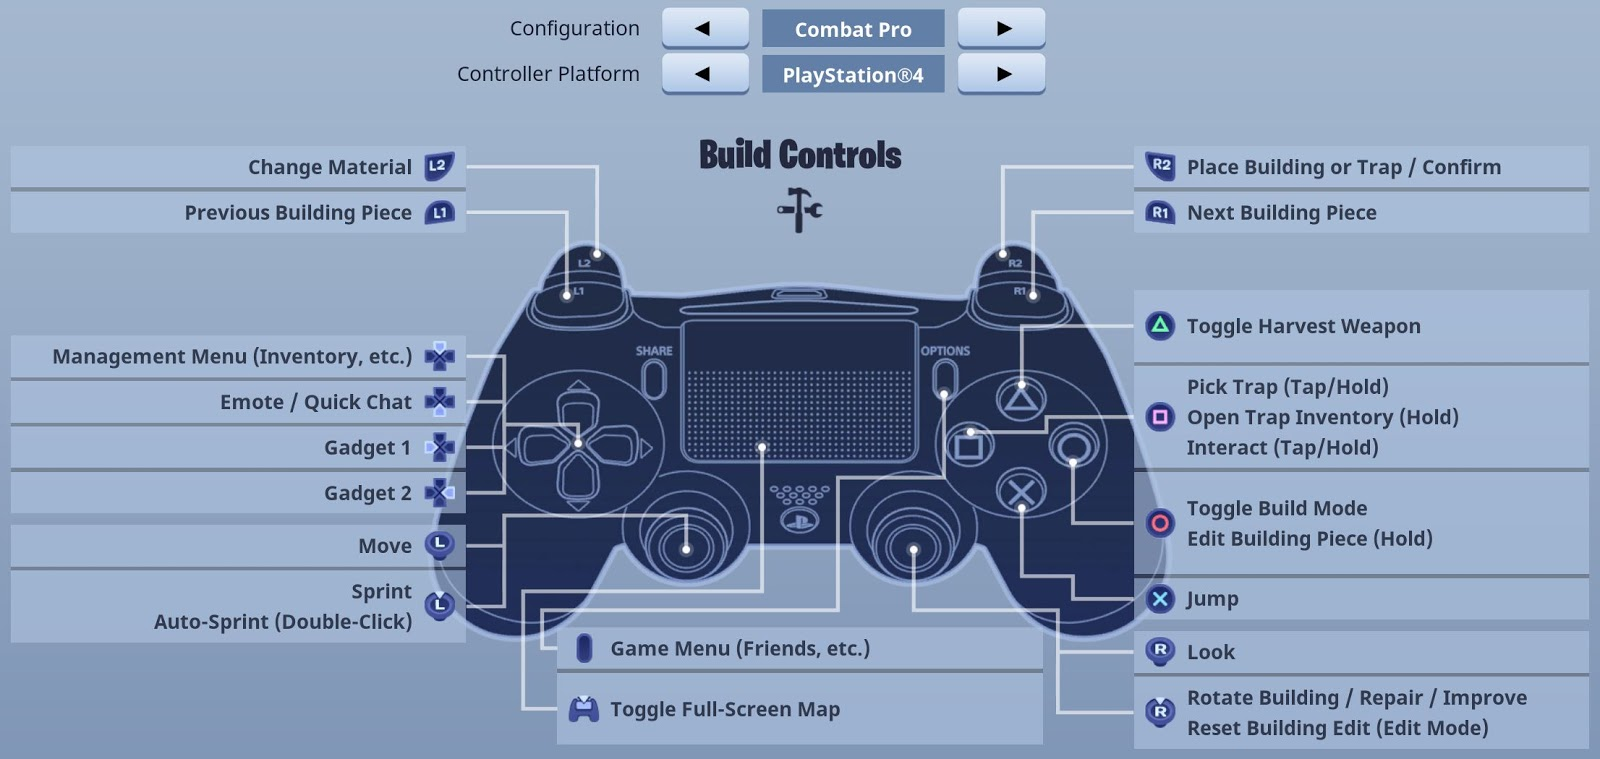 PS4 Combat Pro Build Controls for Fortnite